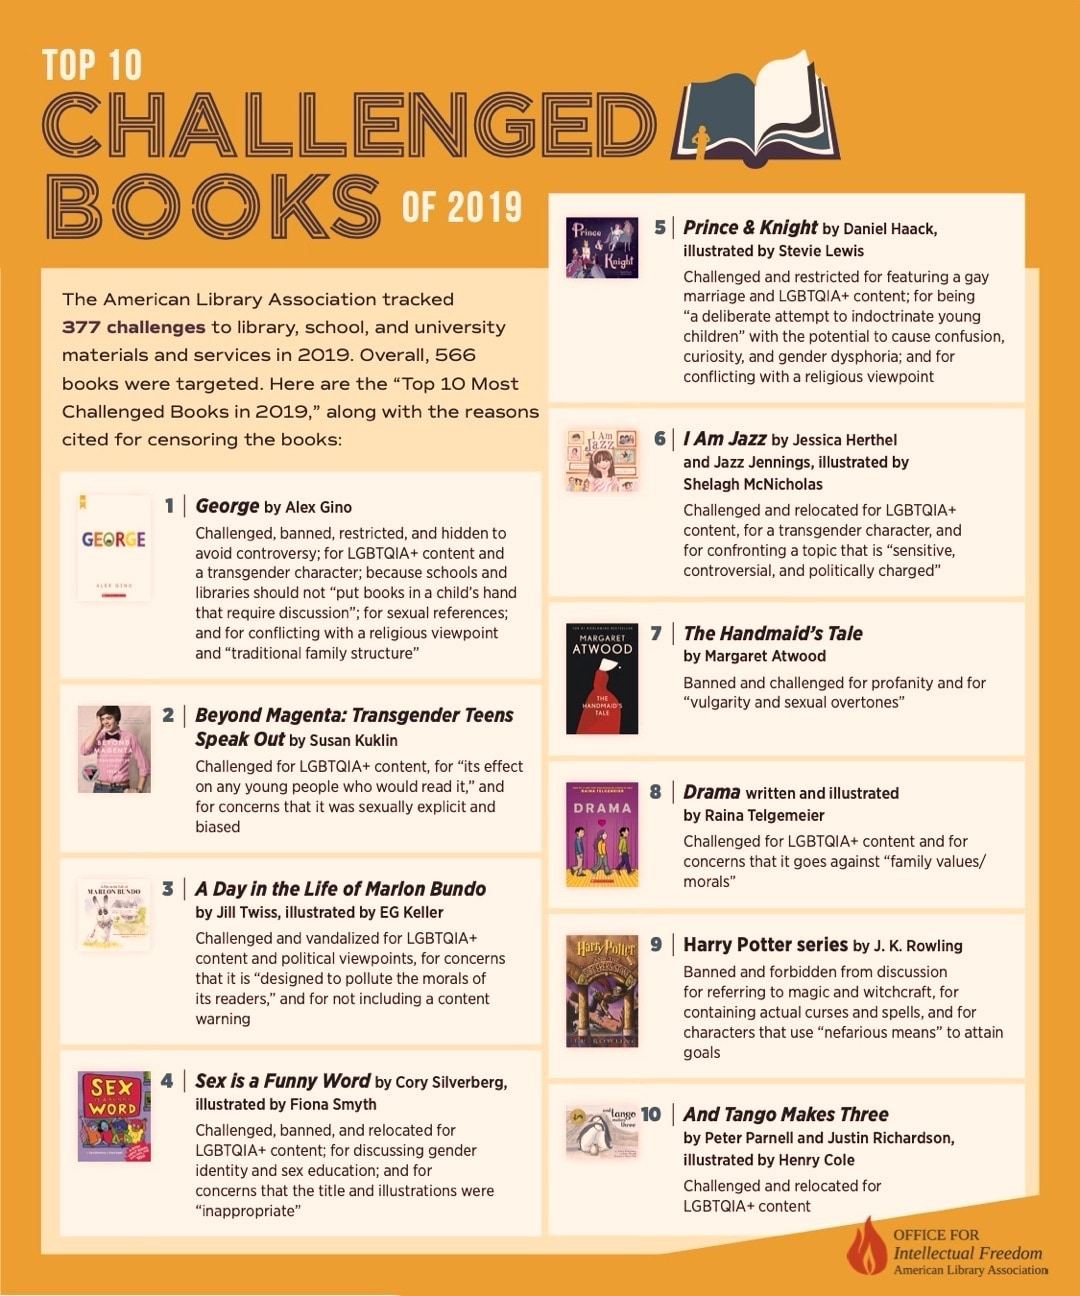 Top 10 most challenged books of 2019 - full infographic